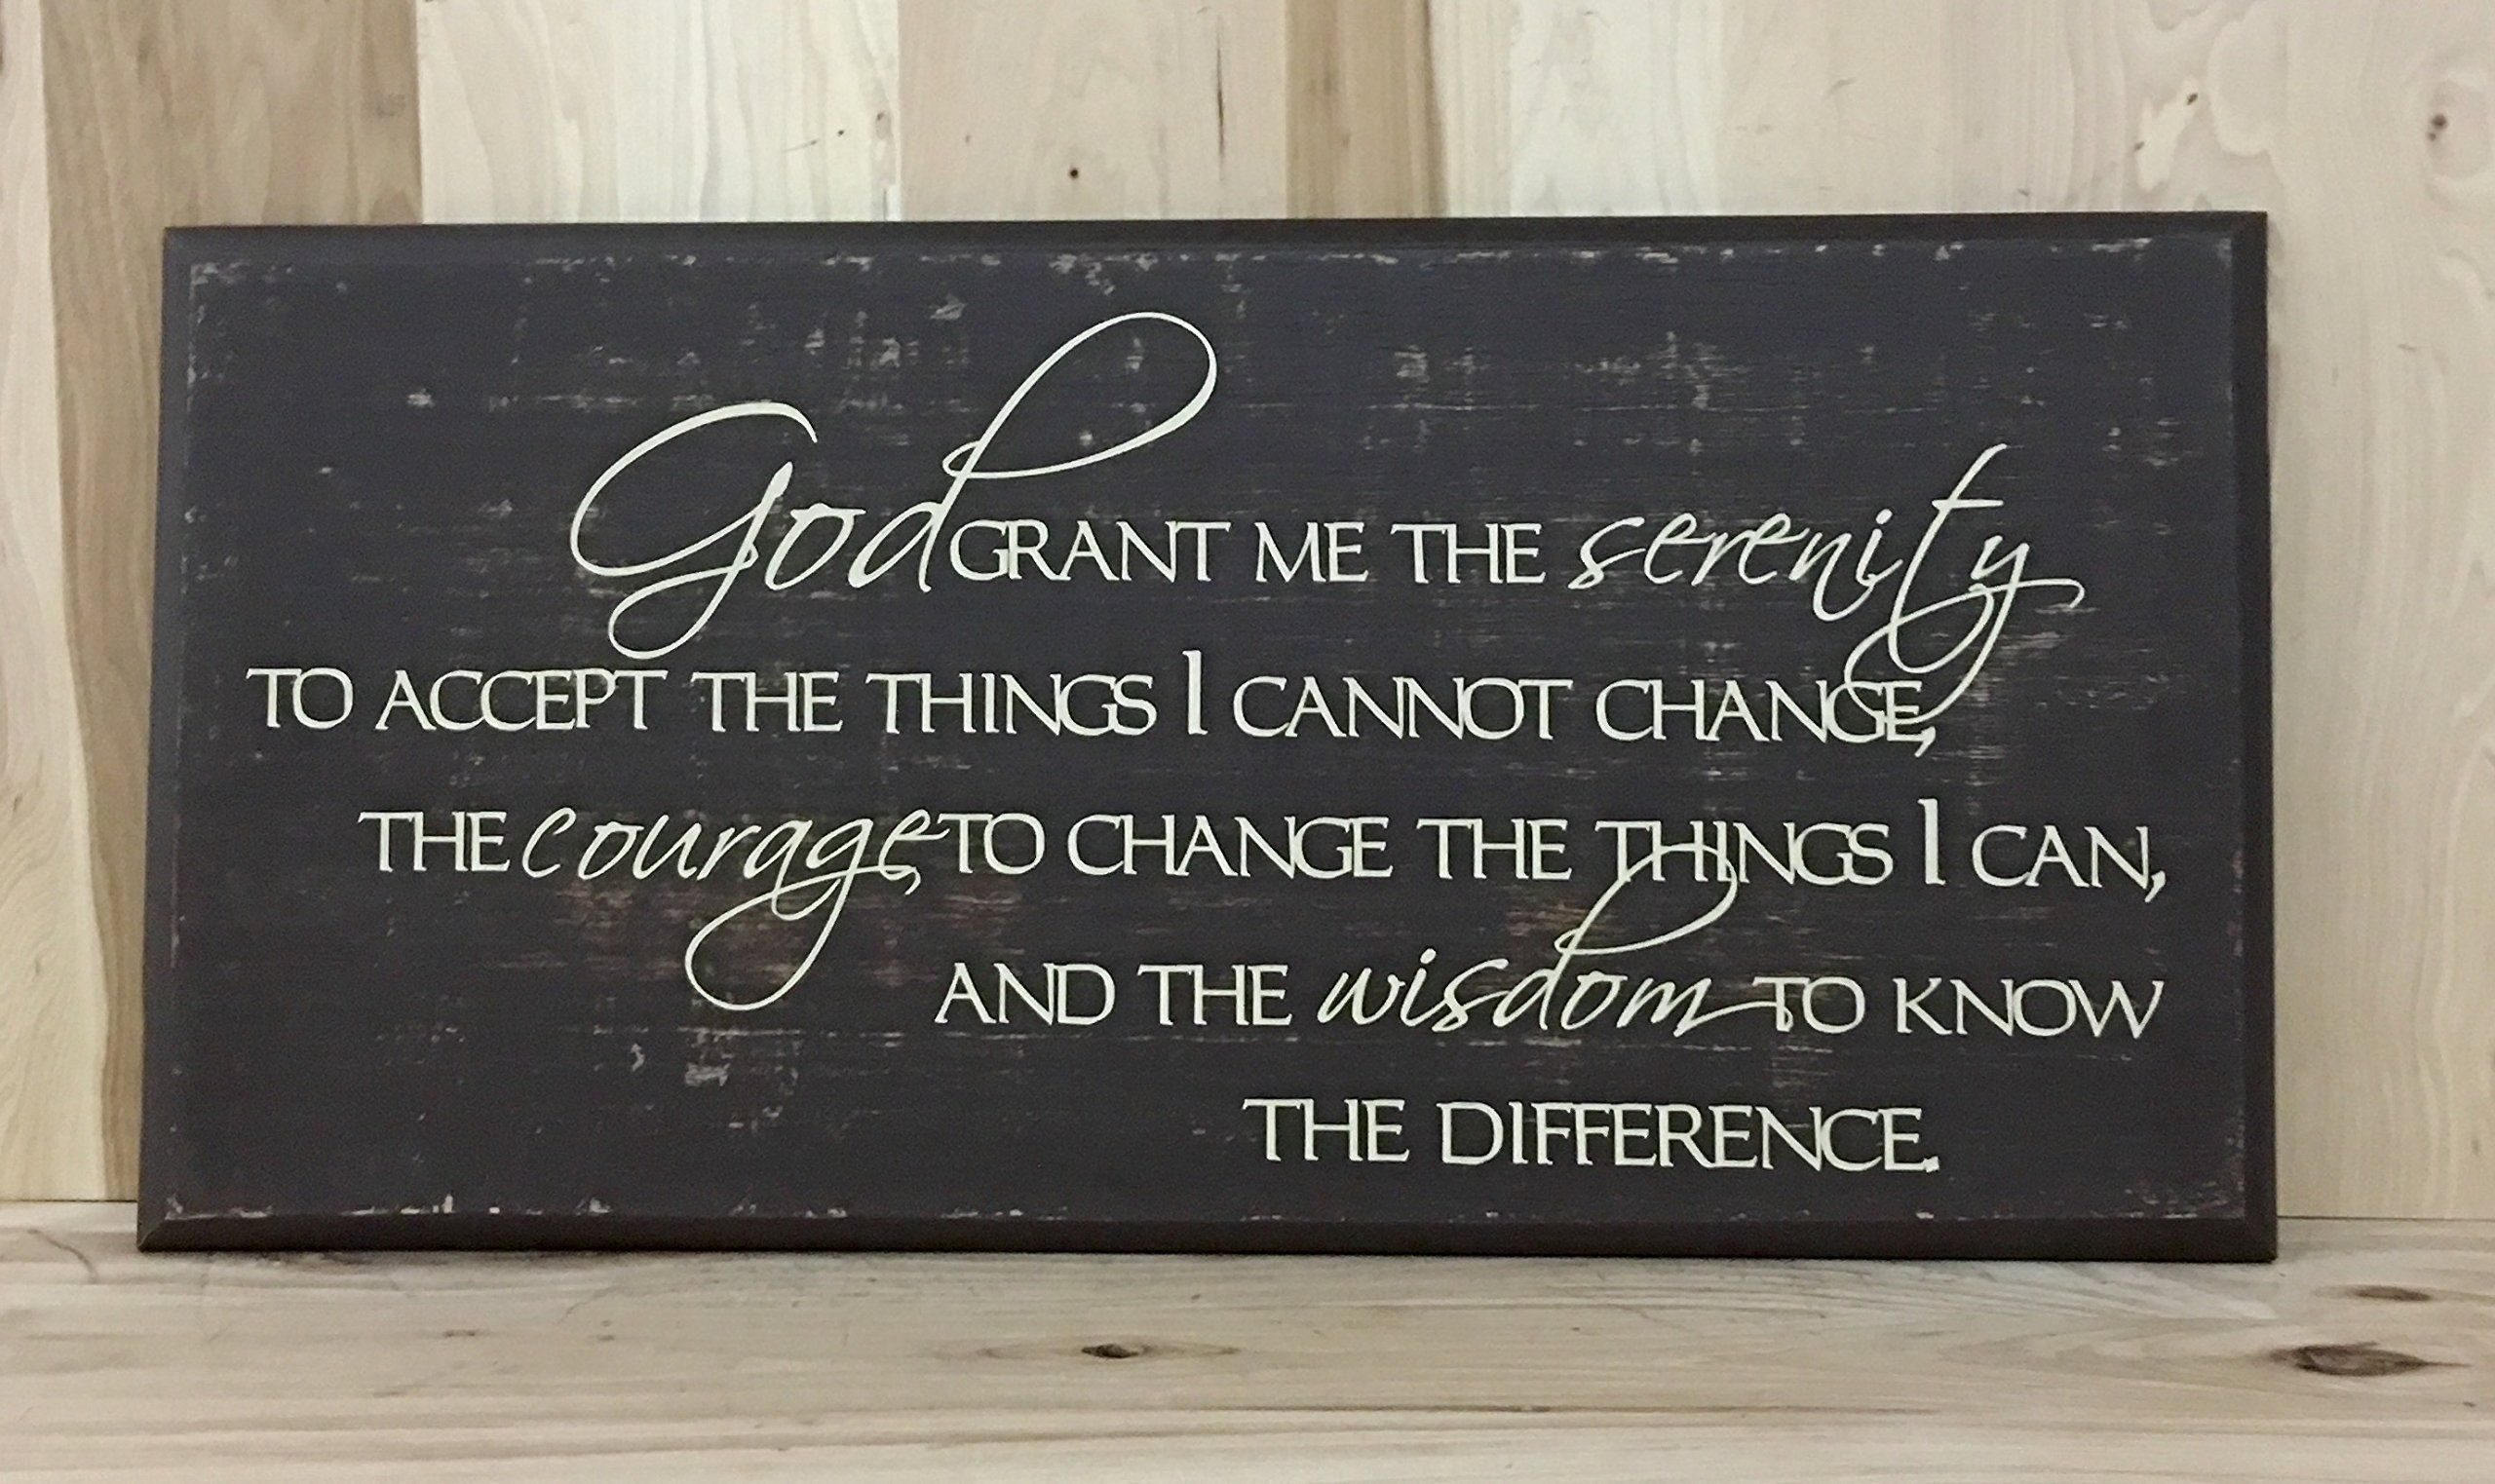 Serenity prayer wood sign, Christian wall art, inspirational gift, religious sign decor. This wood sign is perfect for any home's décor. -This sign is approximately 12x24 inches. -There is a sawtooth hanger on the back for easy hanging. -The words are done with professional grade vinyl. -The sign in the first 2 pictures is light distress brown with cream lettering. -For other color options, refer to pictures three, four and five.